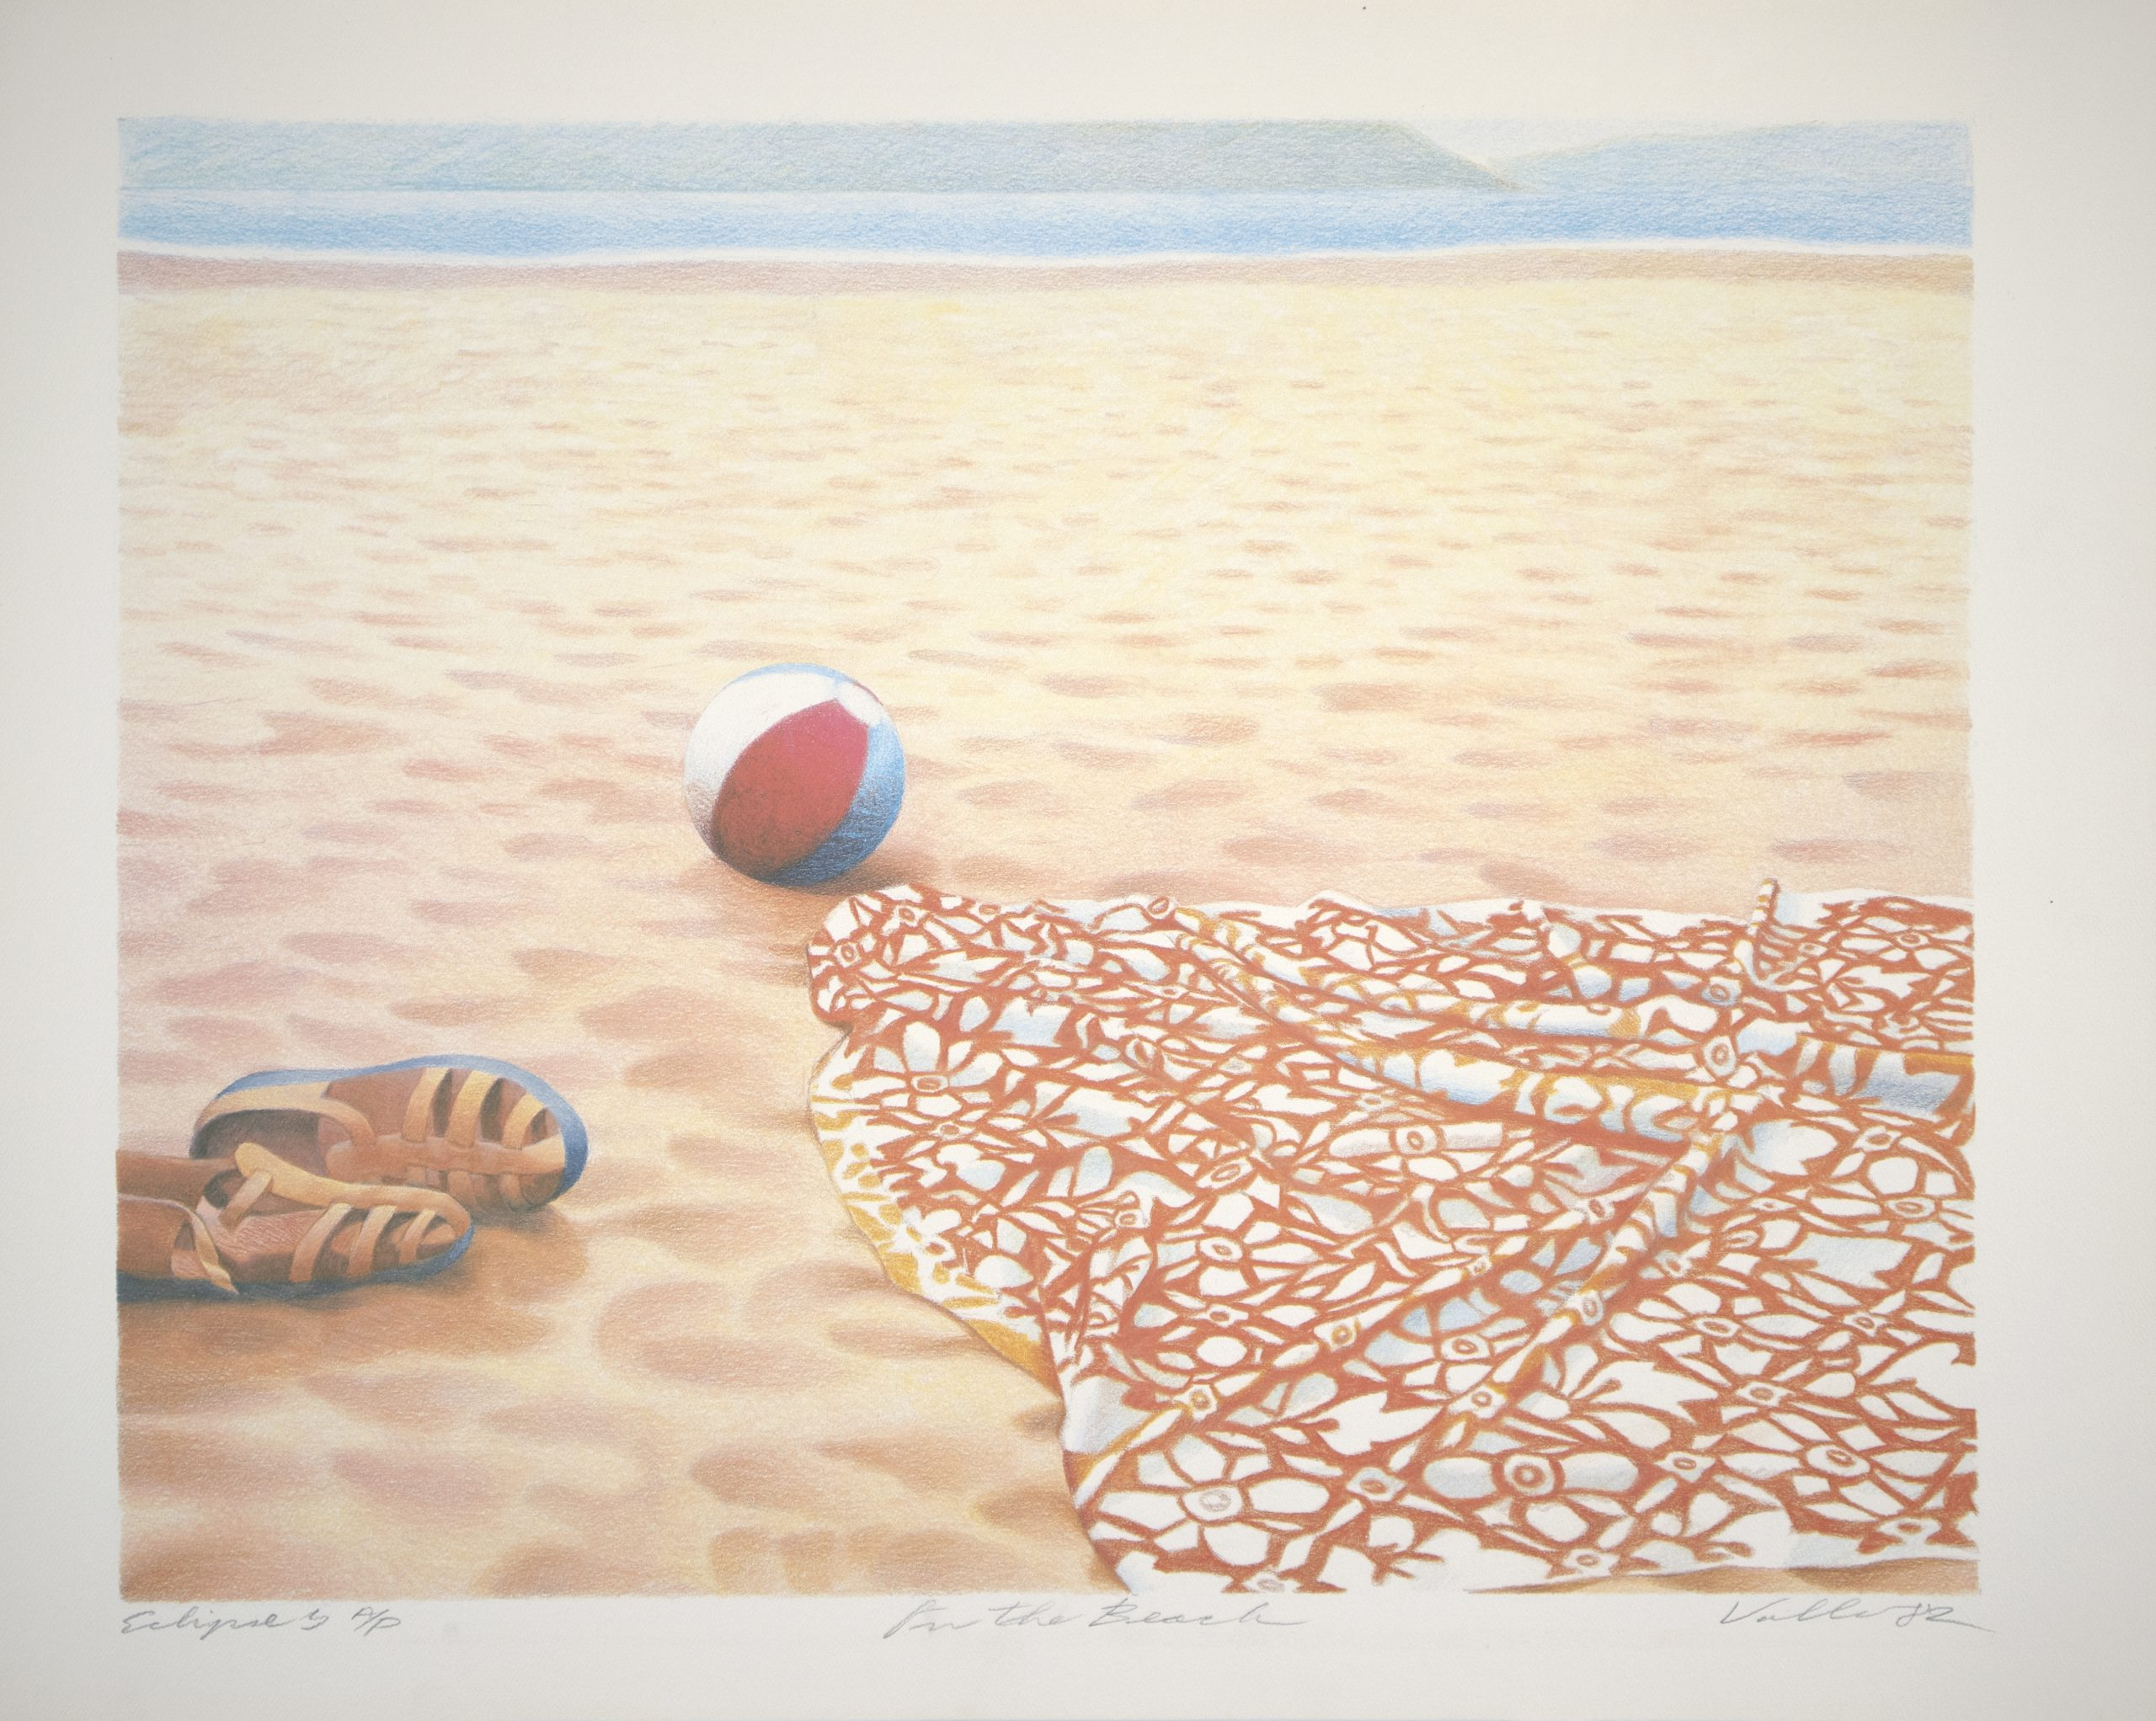 For the Beach - Andrew Valko Image 2